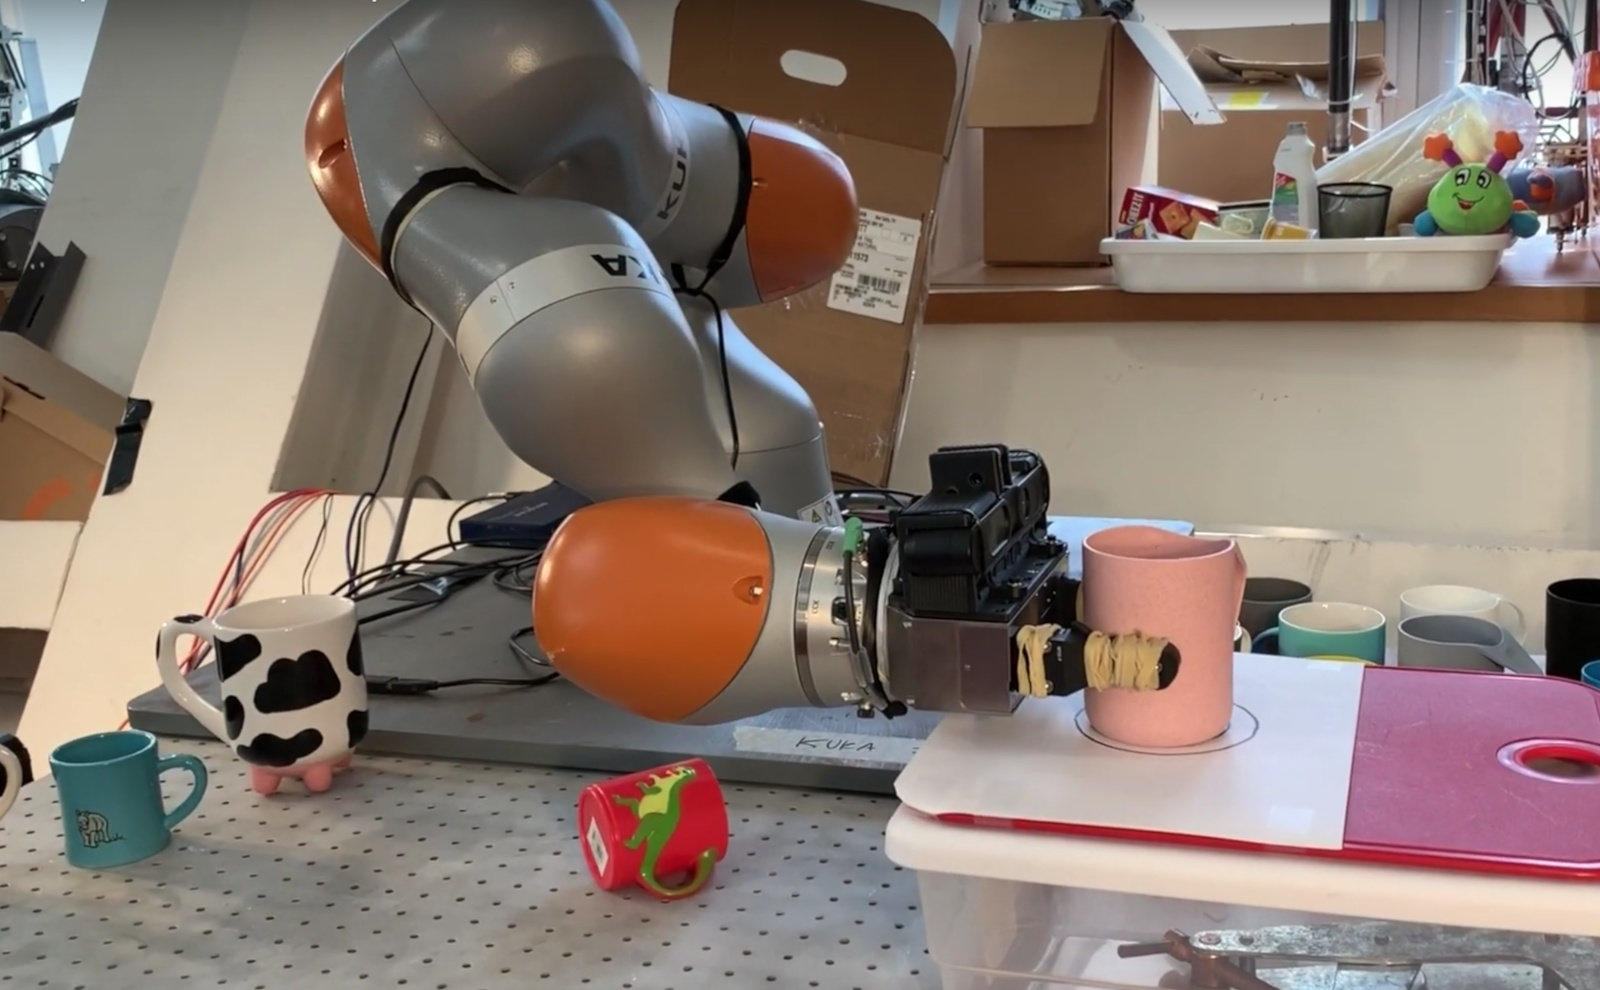 Robot brain teaches machines to pick up objects they haven't seen before | DeviceDaily.com